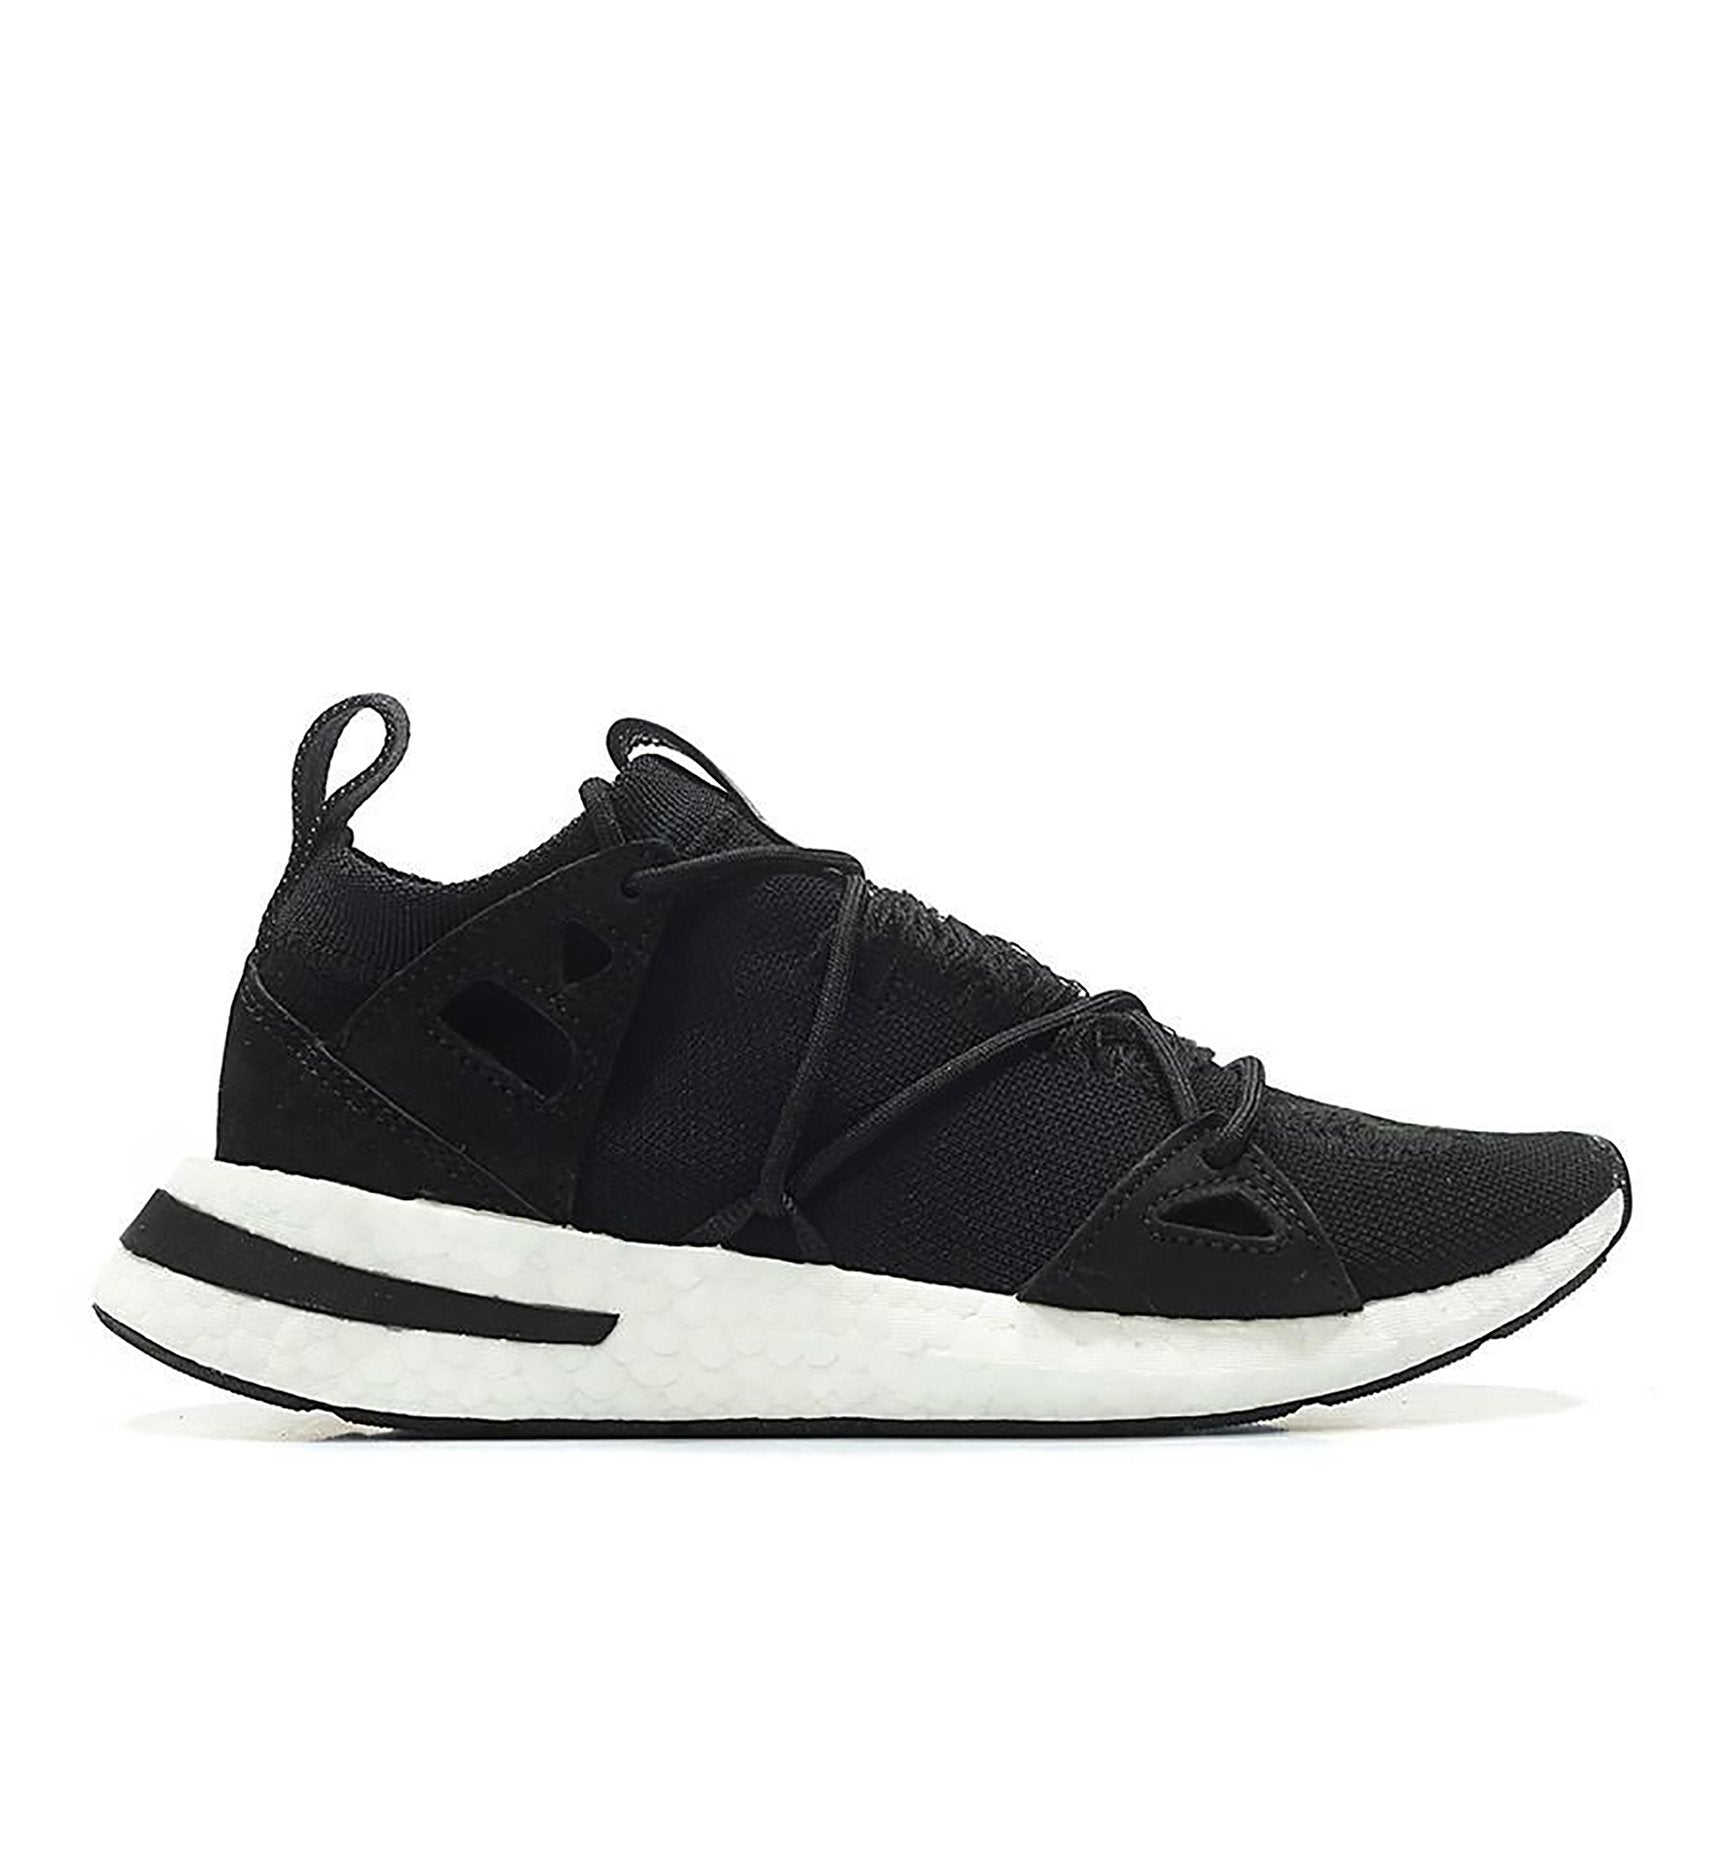 adidas x Naked CPH Arkyn Women's - Black/White